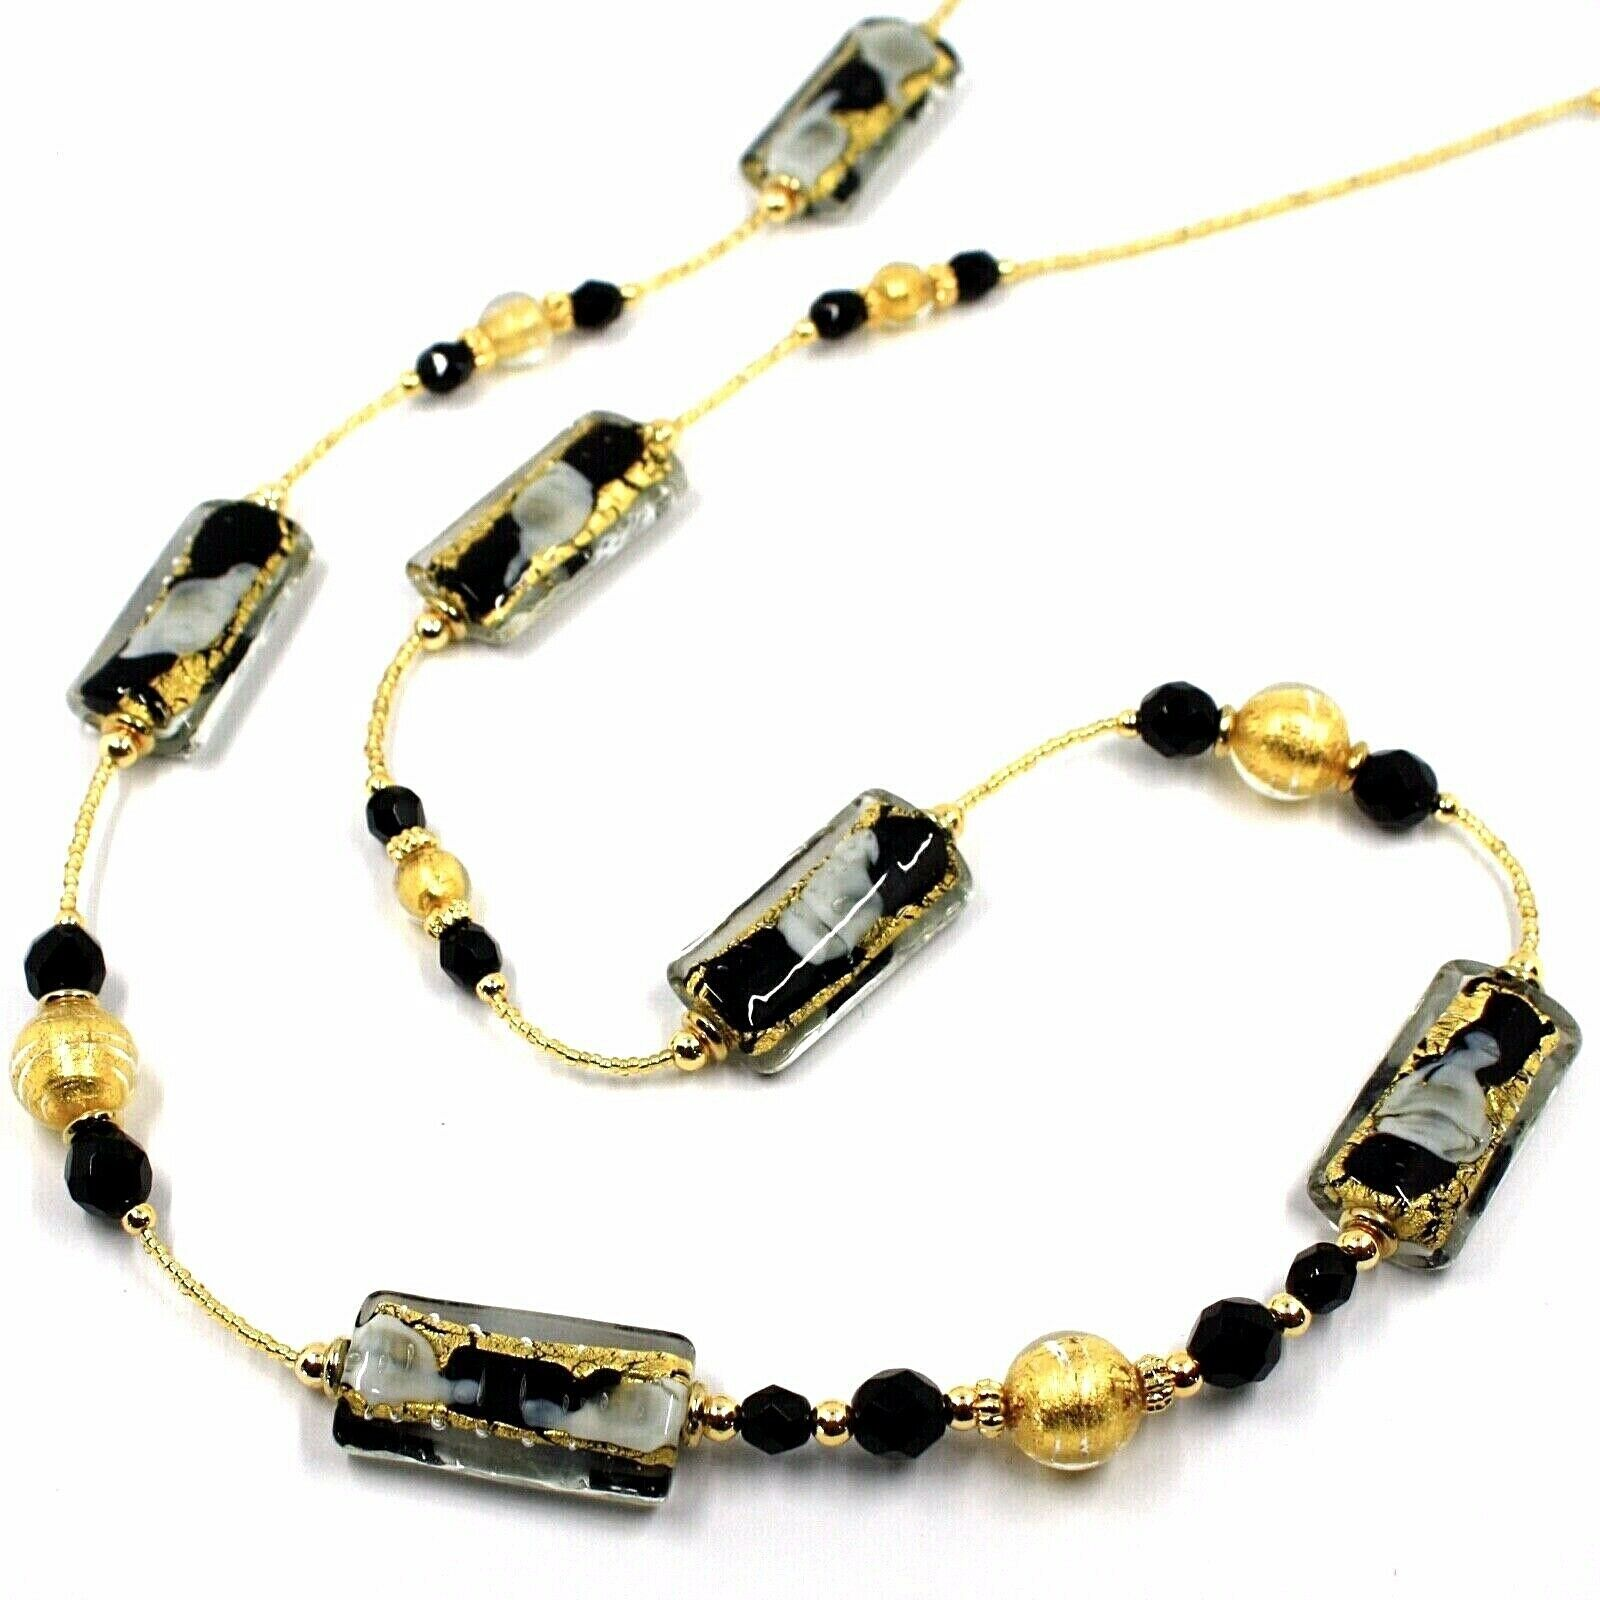 LONG NECKLACE BLACK MURANO GLASS RECTANGLE TUBE, SPHERE, GOLD LEAF, ITALY MADE